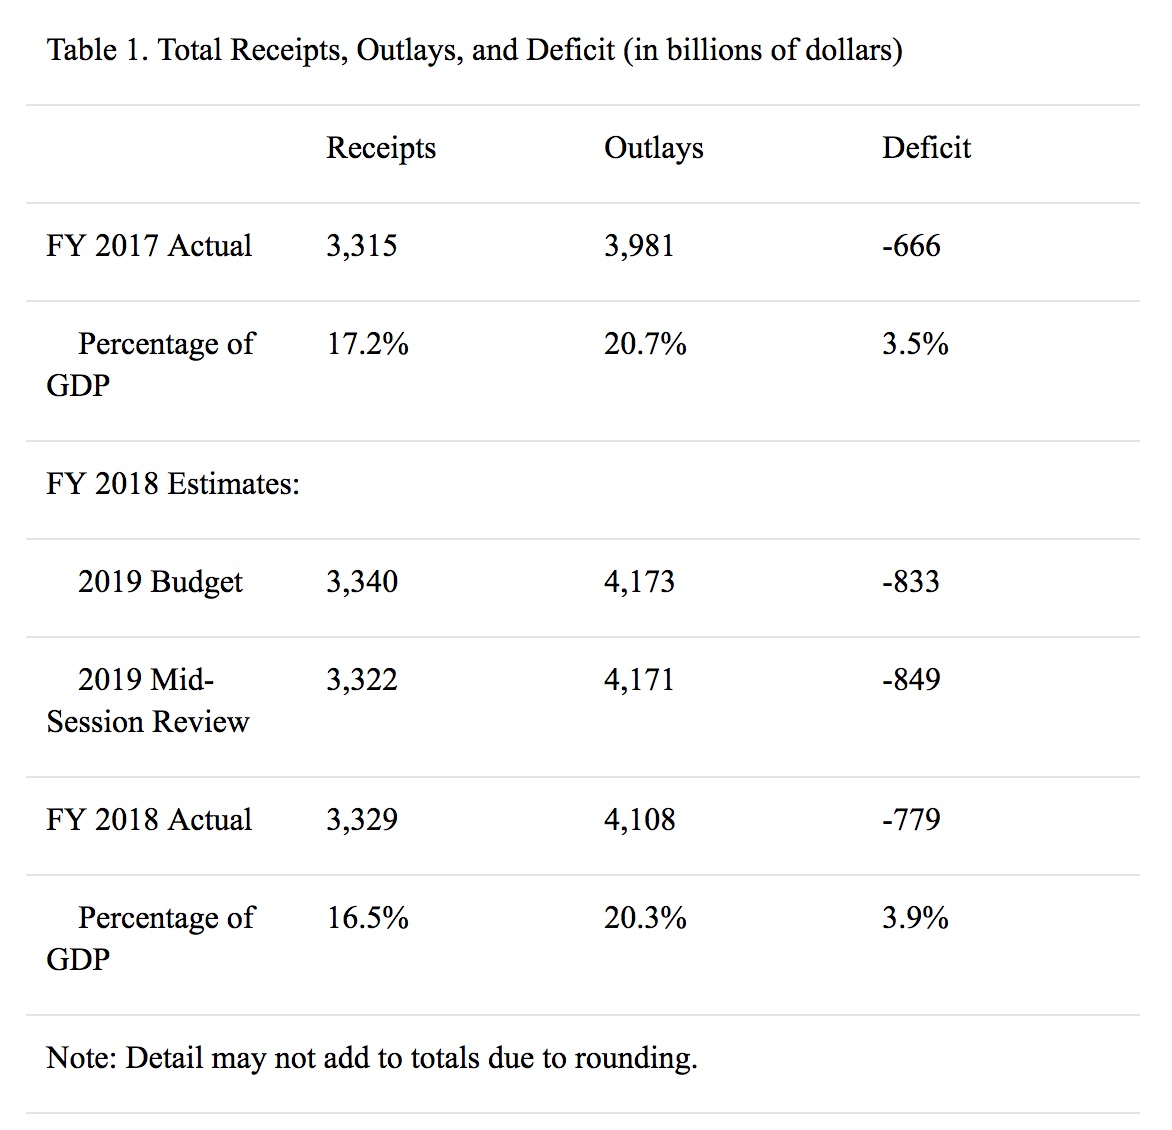 Treasury Department graph of data showing the growing deficit from fiscal years 2017 to 2018.